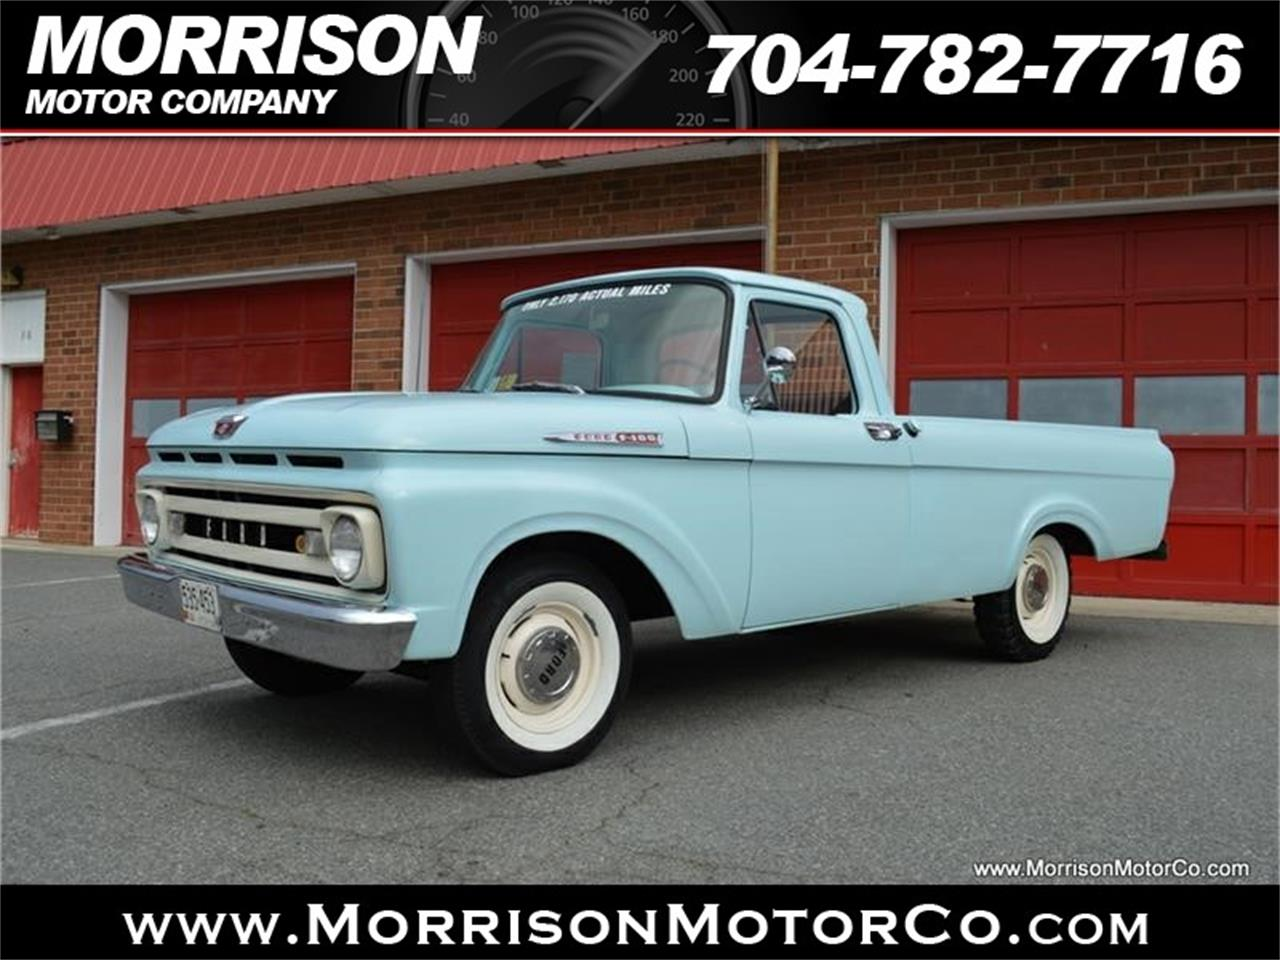 Large Picture of 1961 Ford F100 located in Concord North Carolina - $28,900.00 Offered by Morrison Motor Company - N2N5